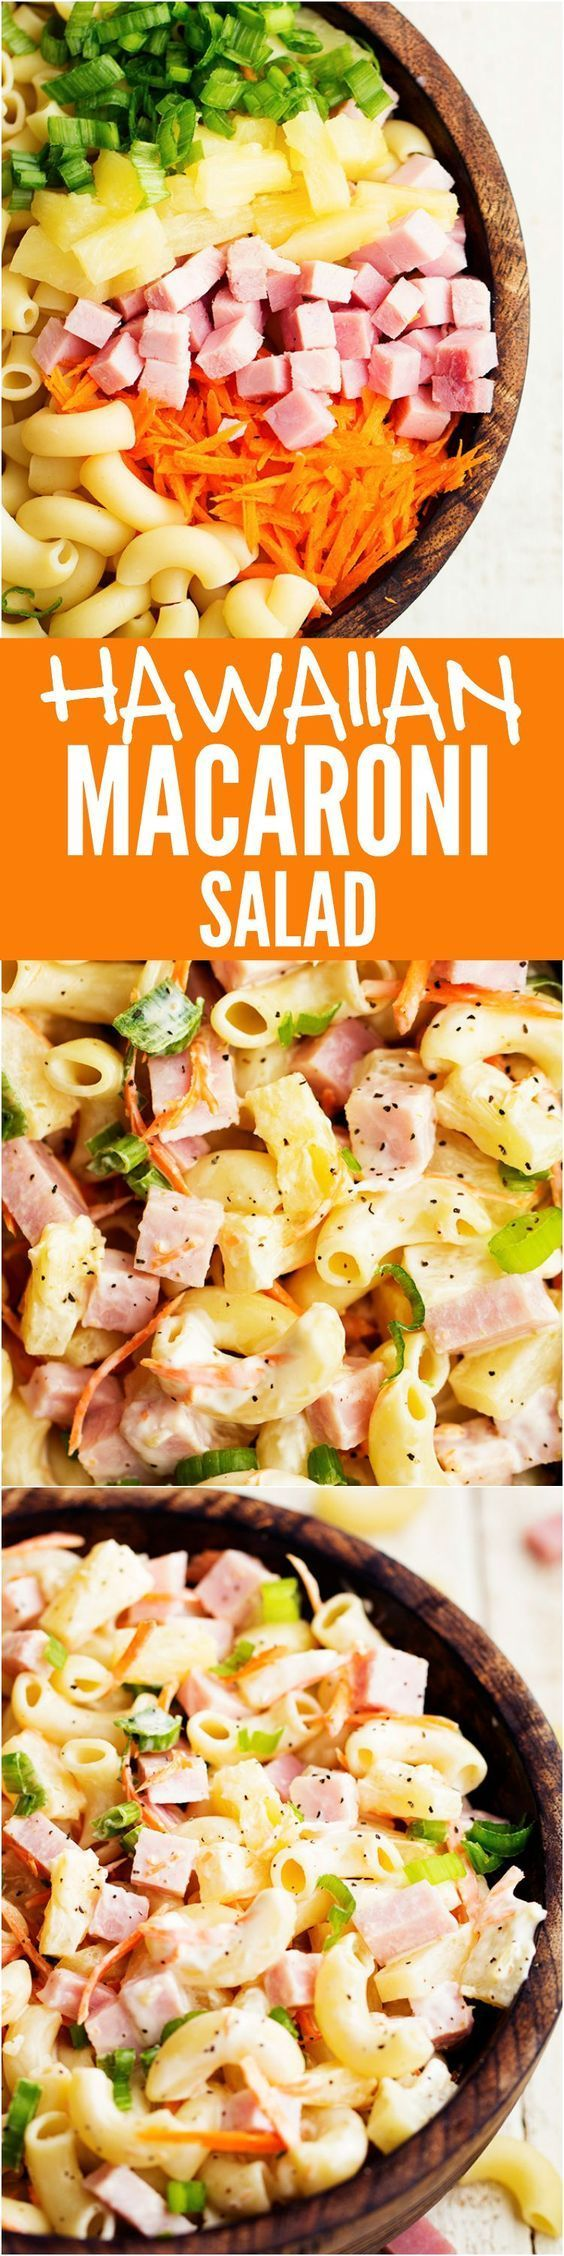 (6) Hawaiian Macaroni Salad | Recipe